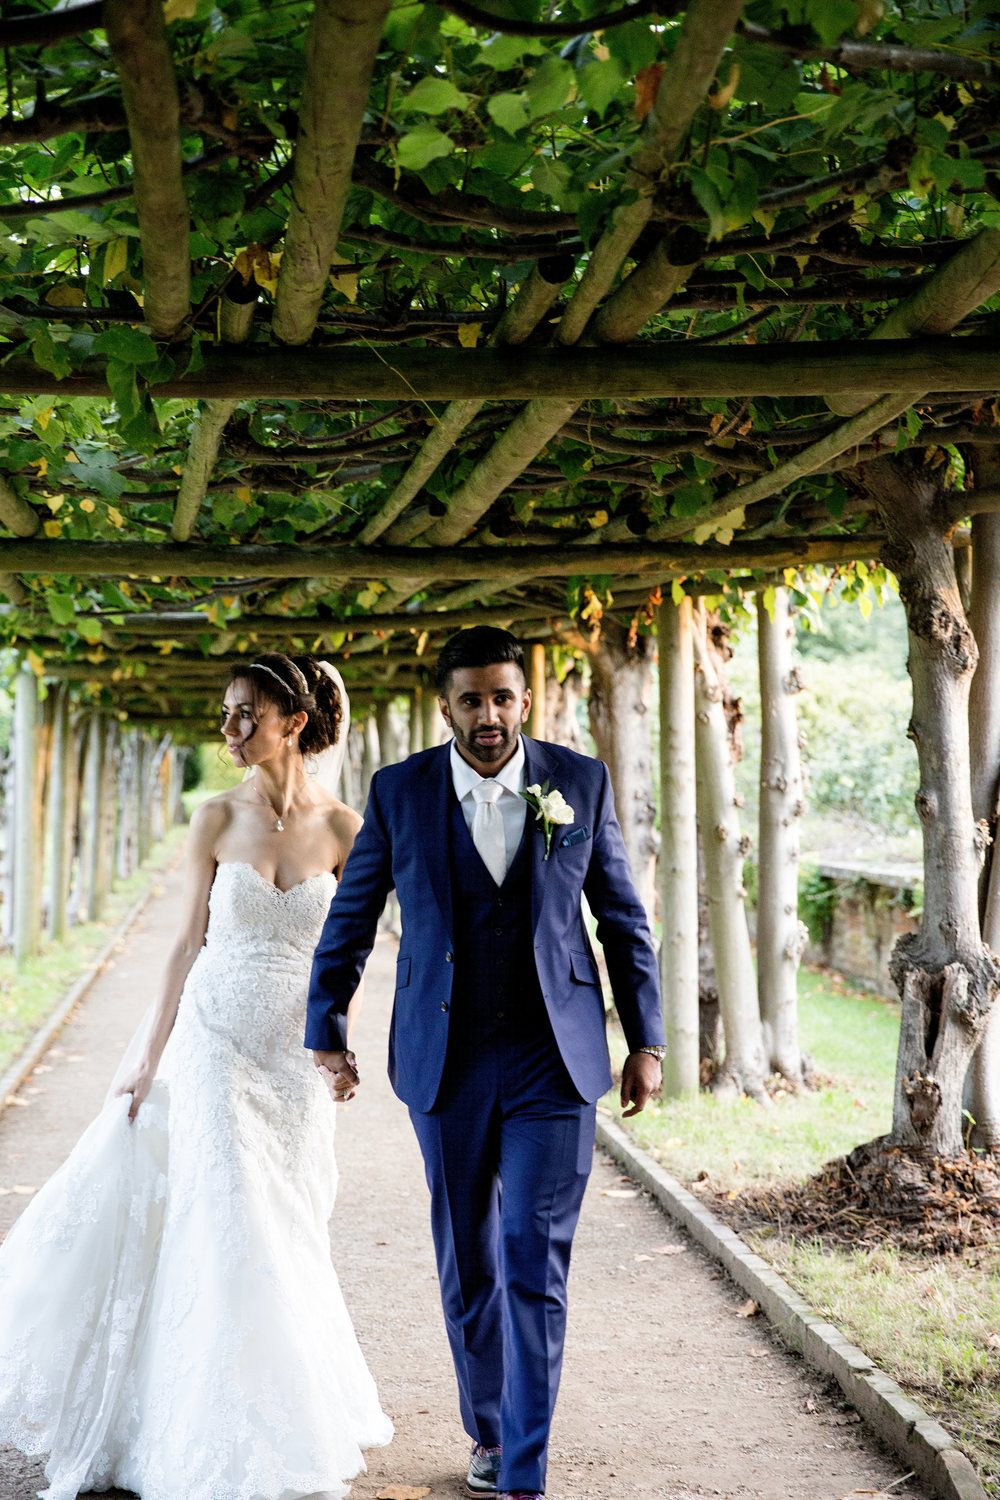 London wedding reception at Hatfield House Sophie Anwar photography August weddings